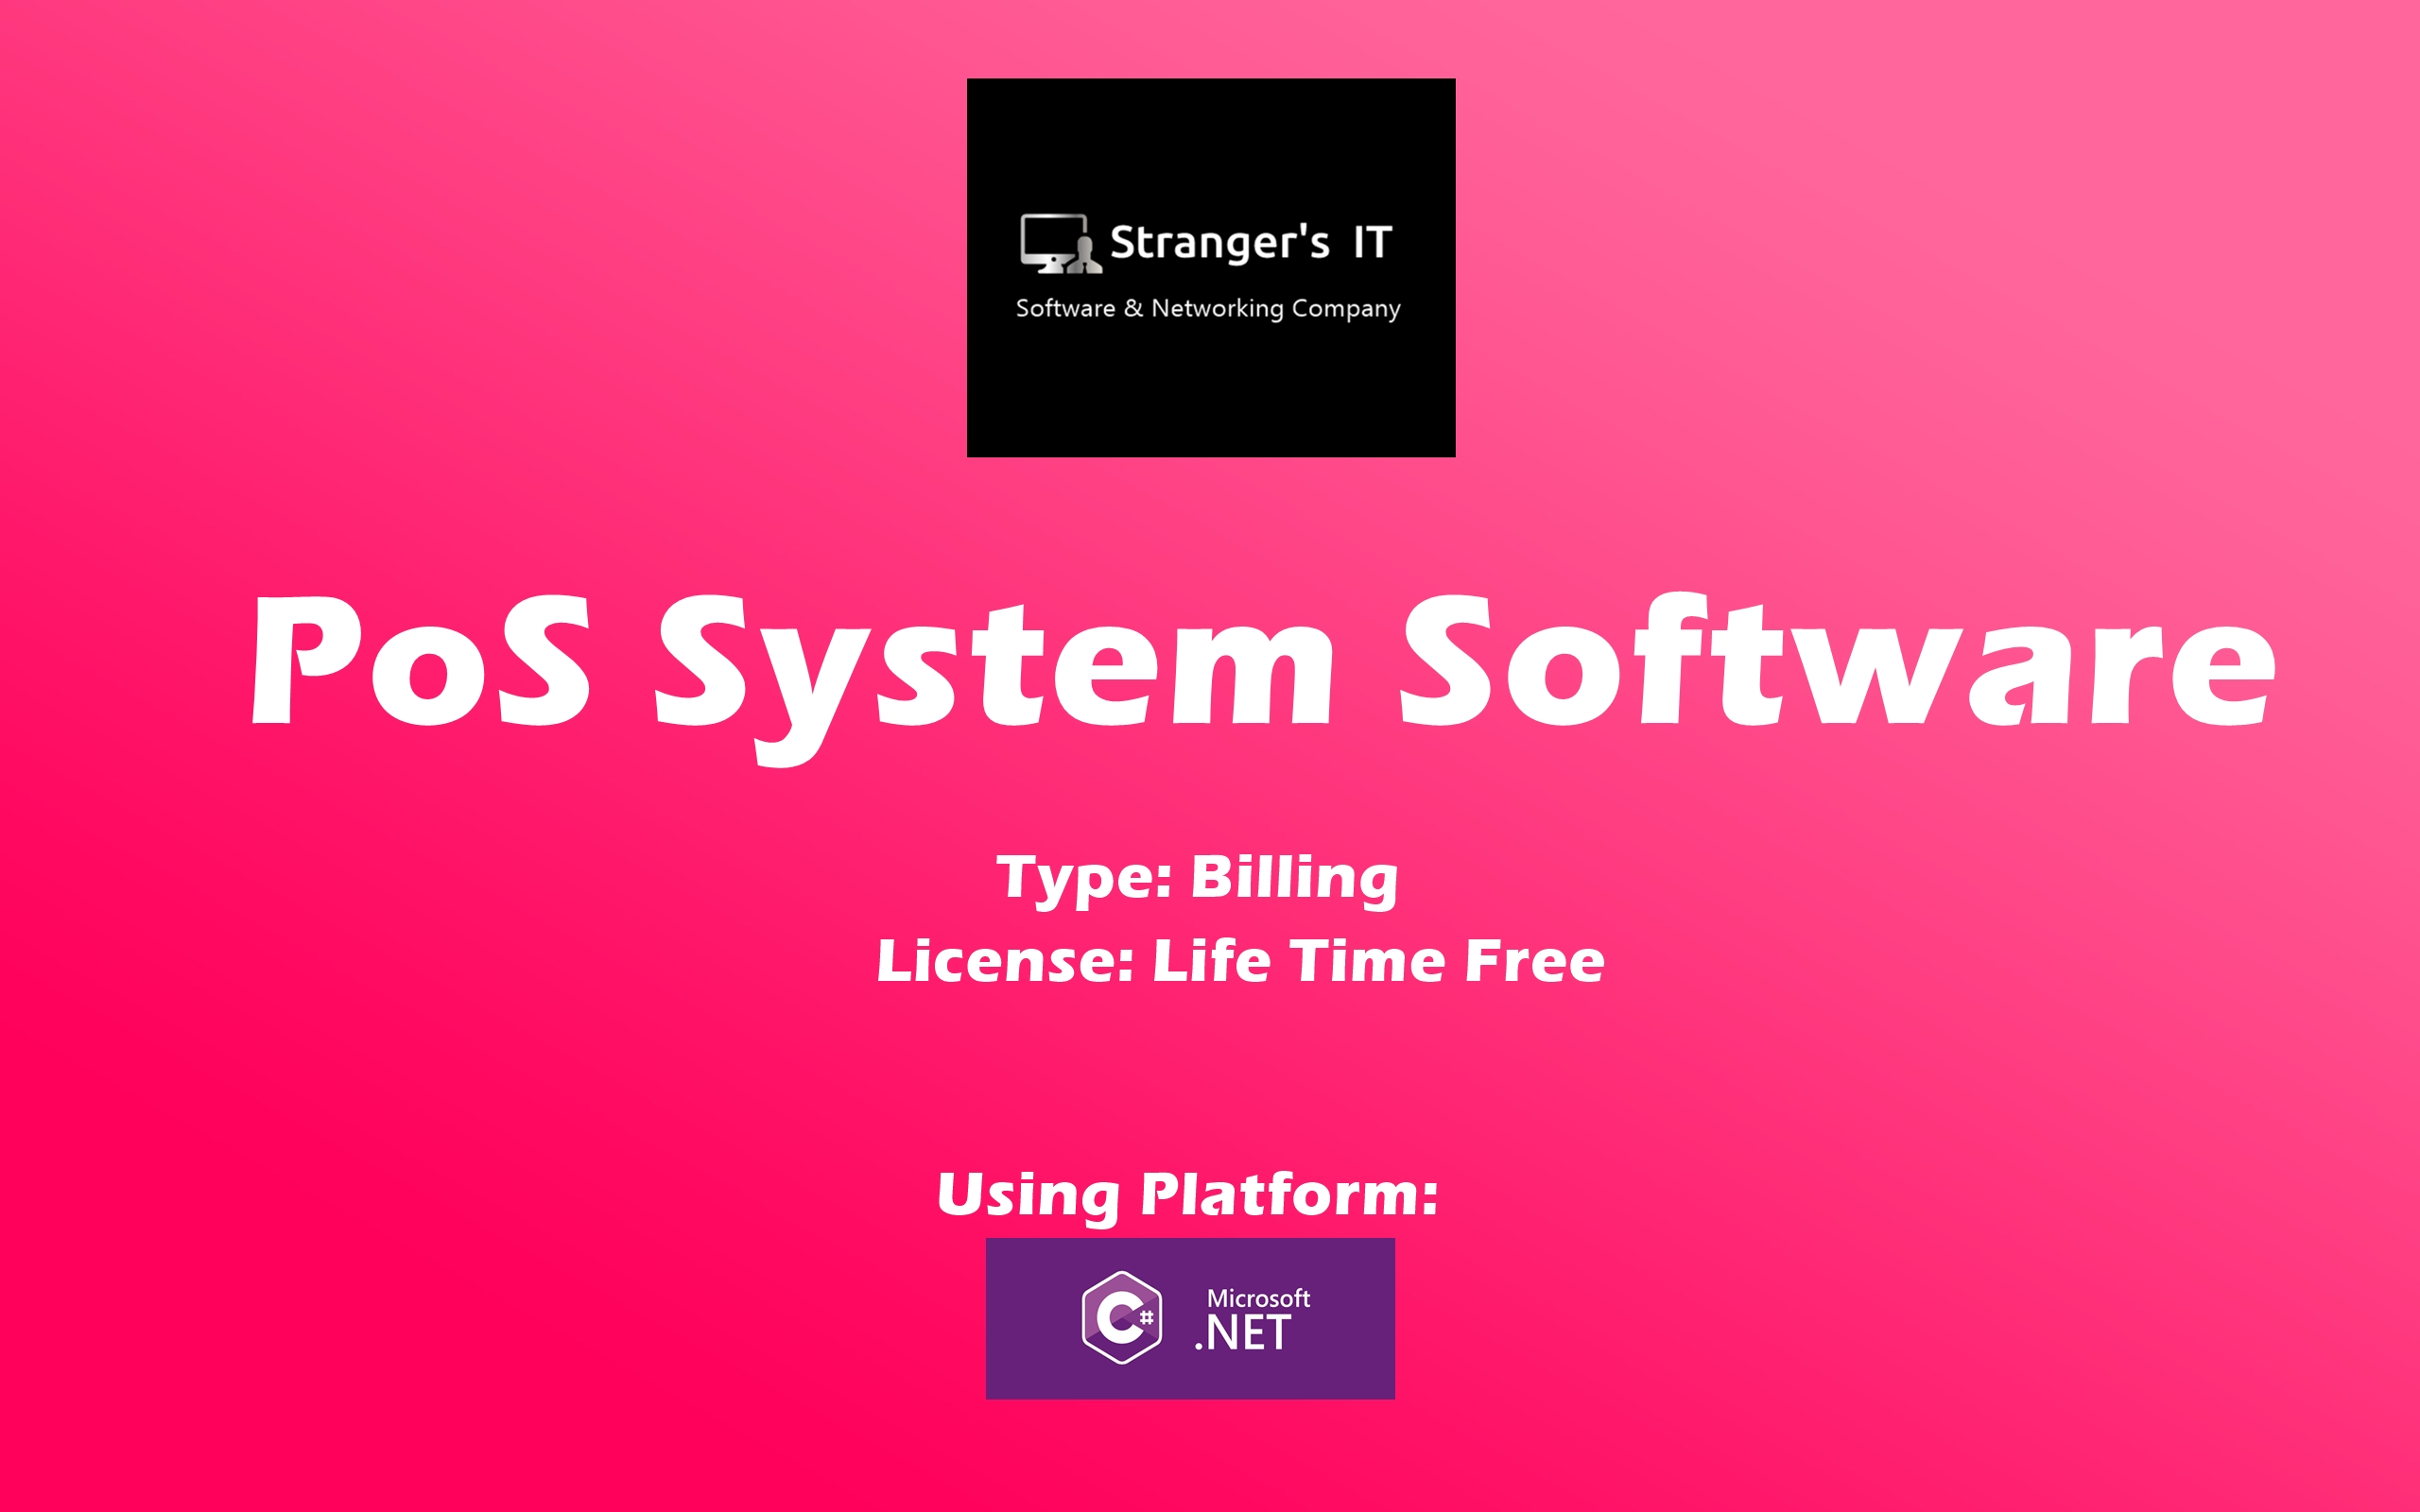 Create PoS System Software point of sale system software for your Enterprise